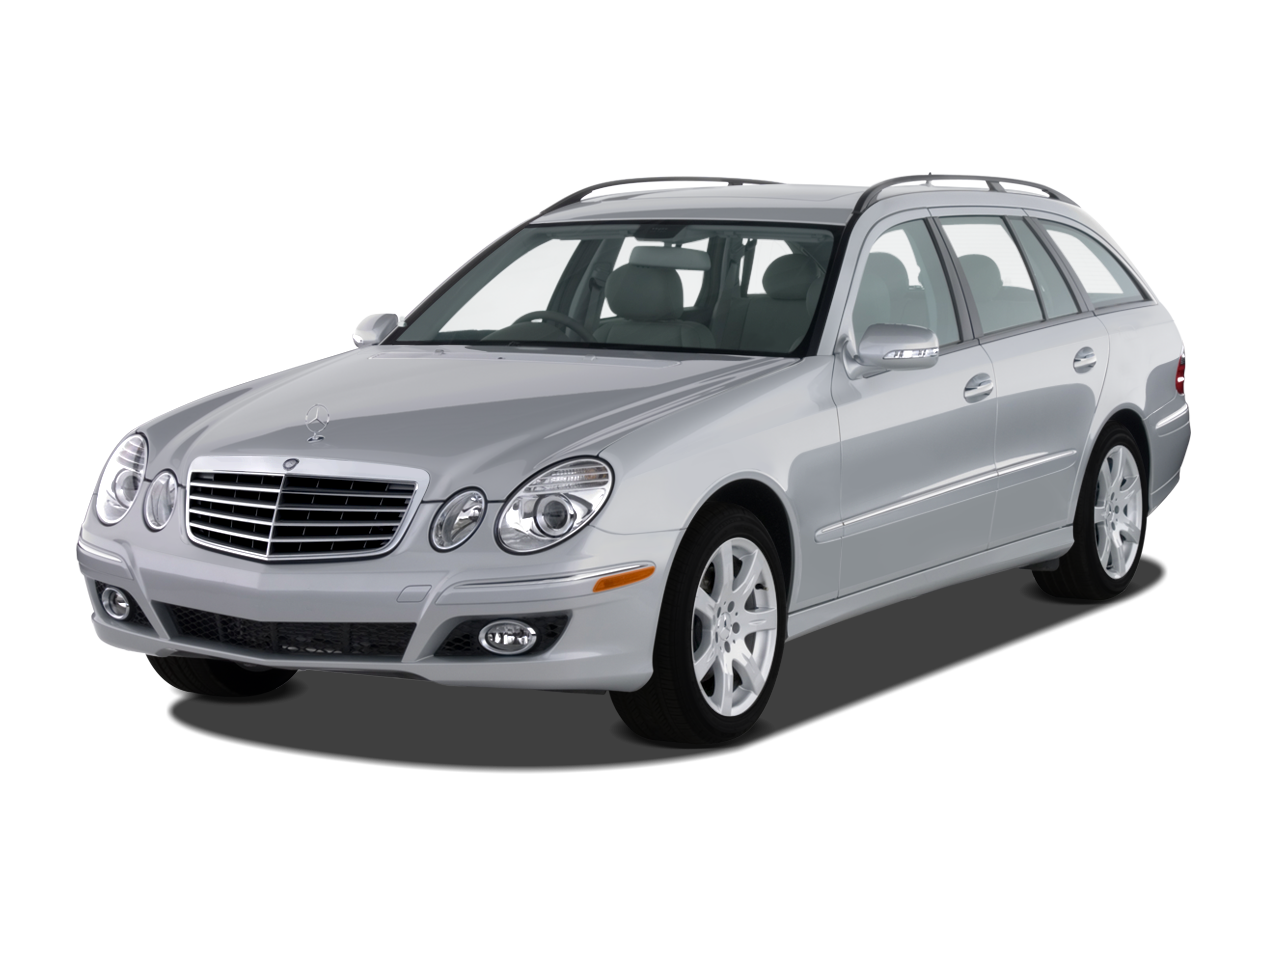 2008 mercedes benz e class latest news features and for Mercedes benz e 350 2008